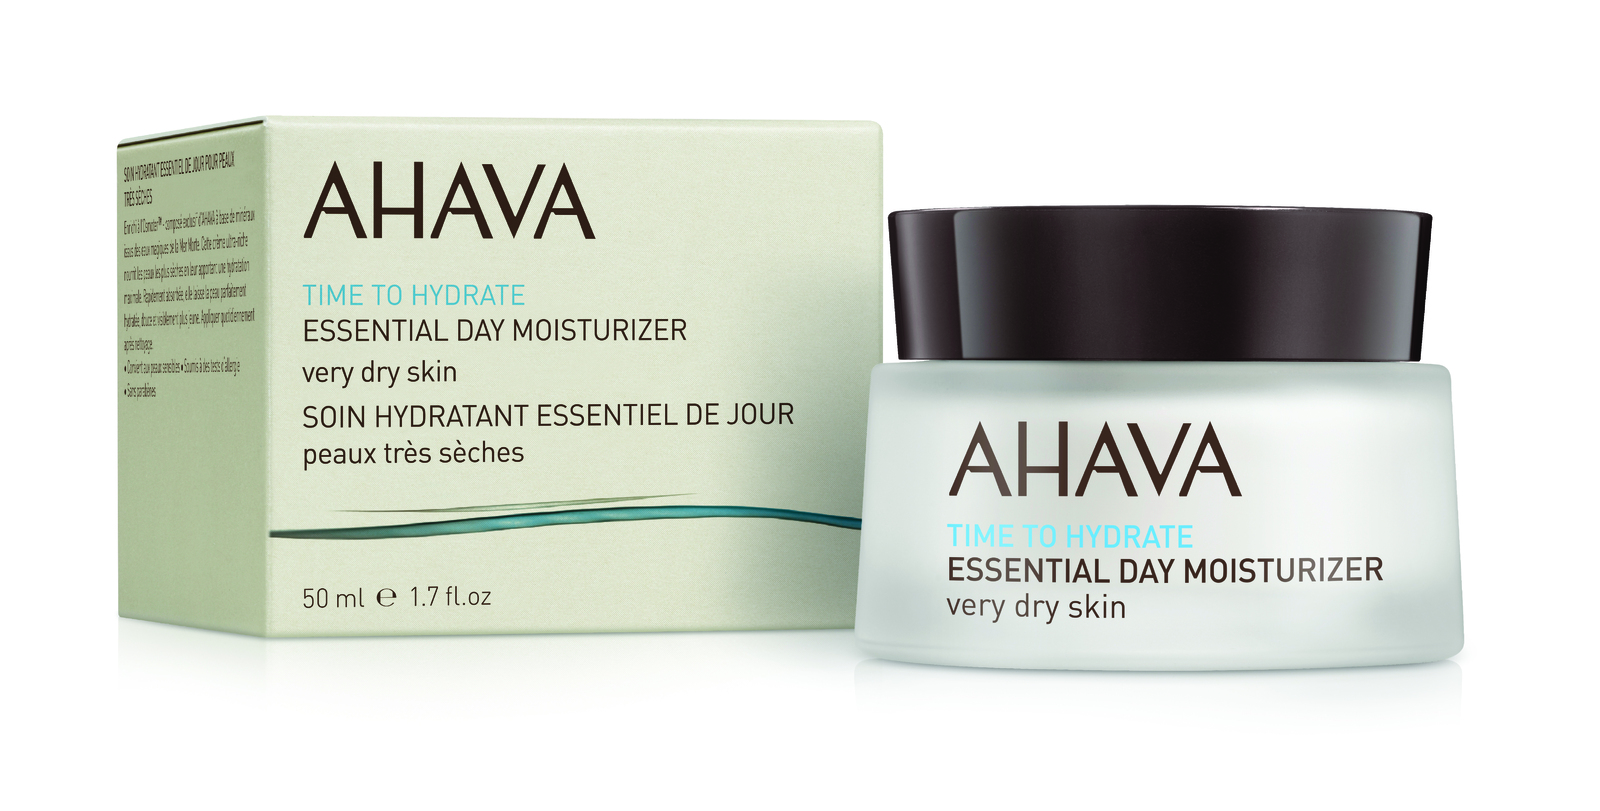 Image of Ahava Time to Hydrate Essential Day Moisturizer